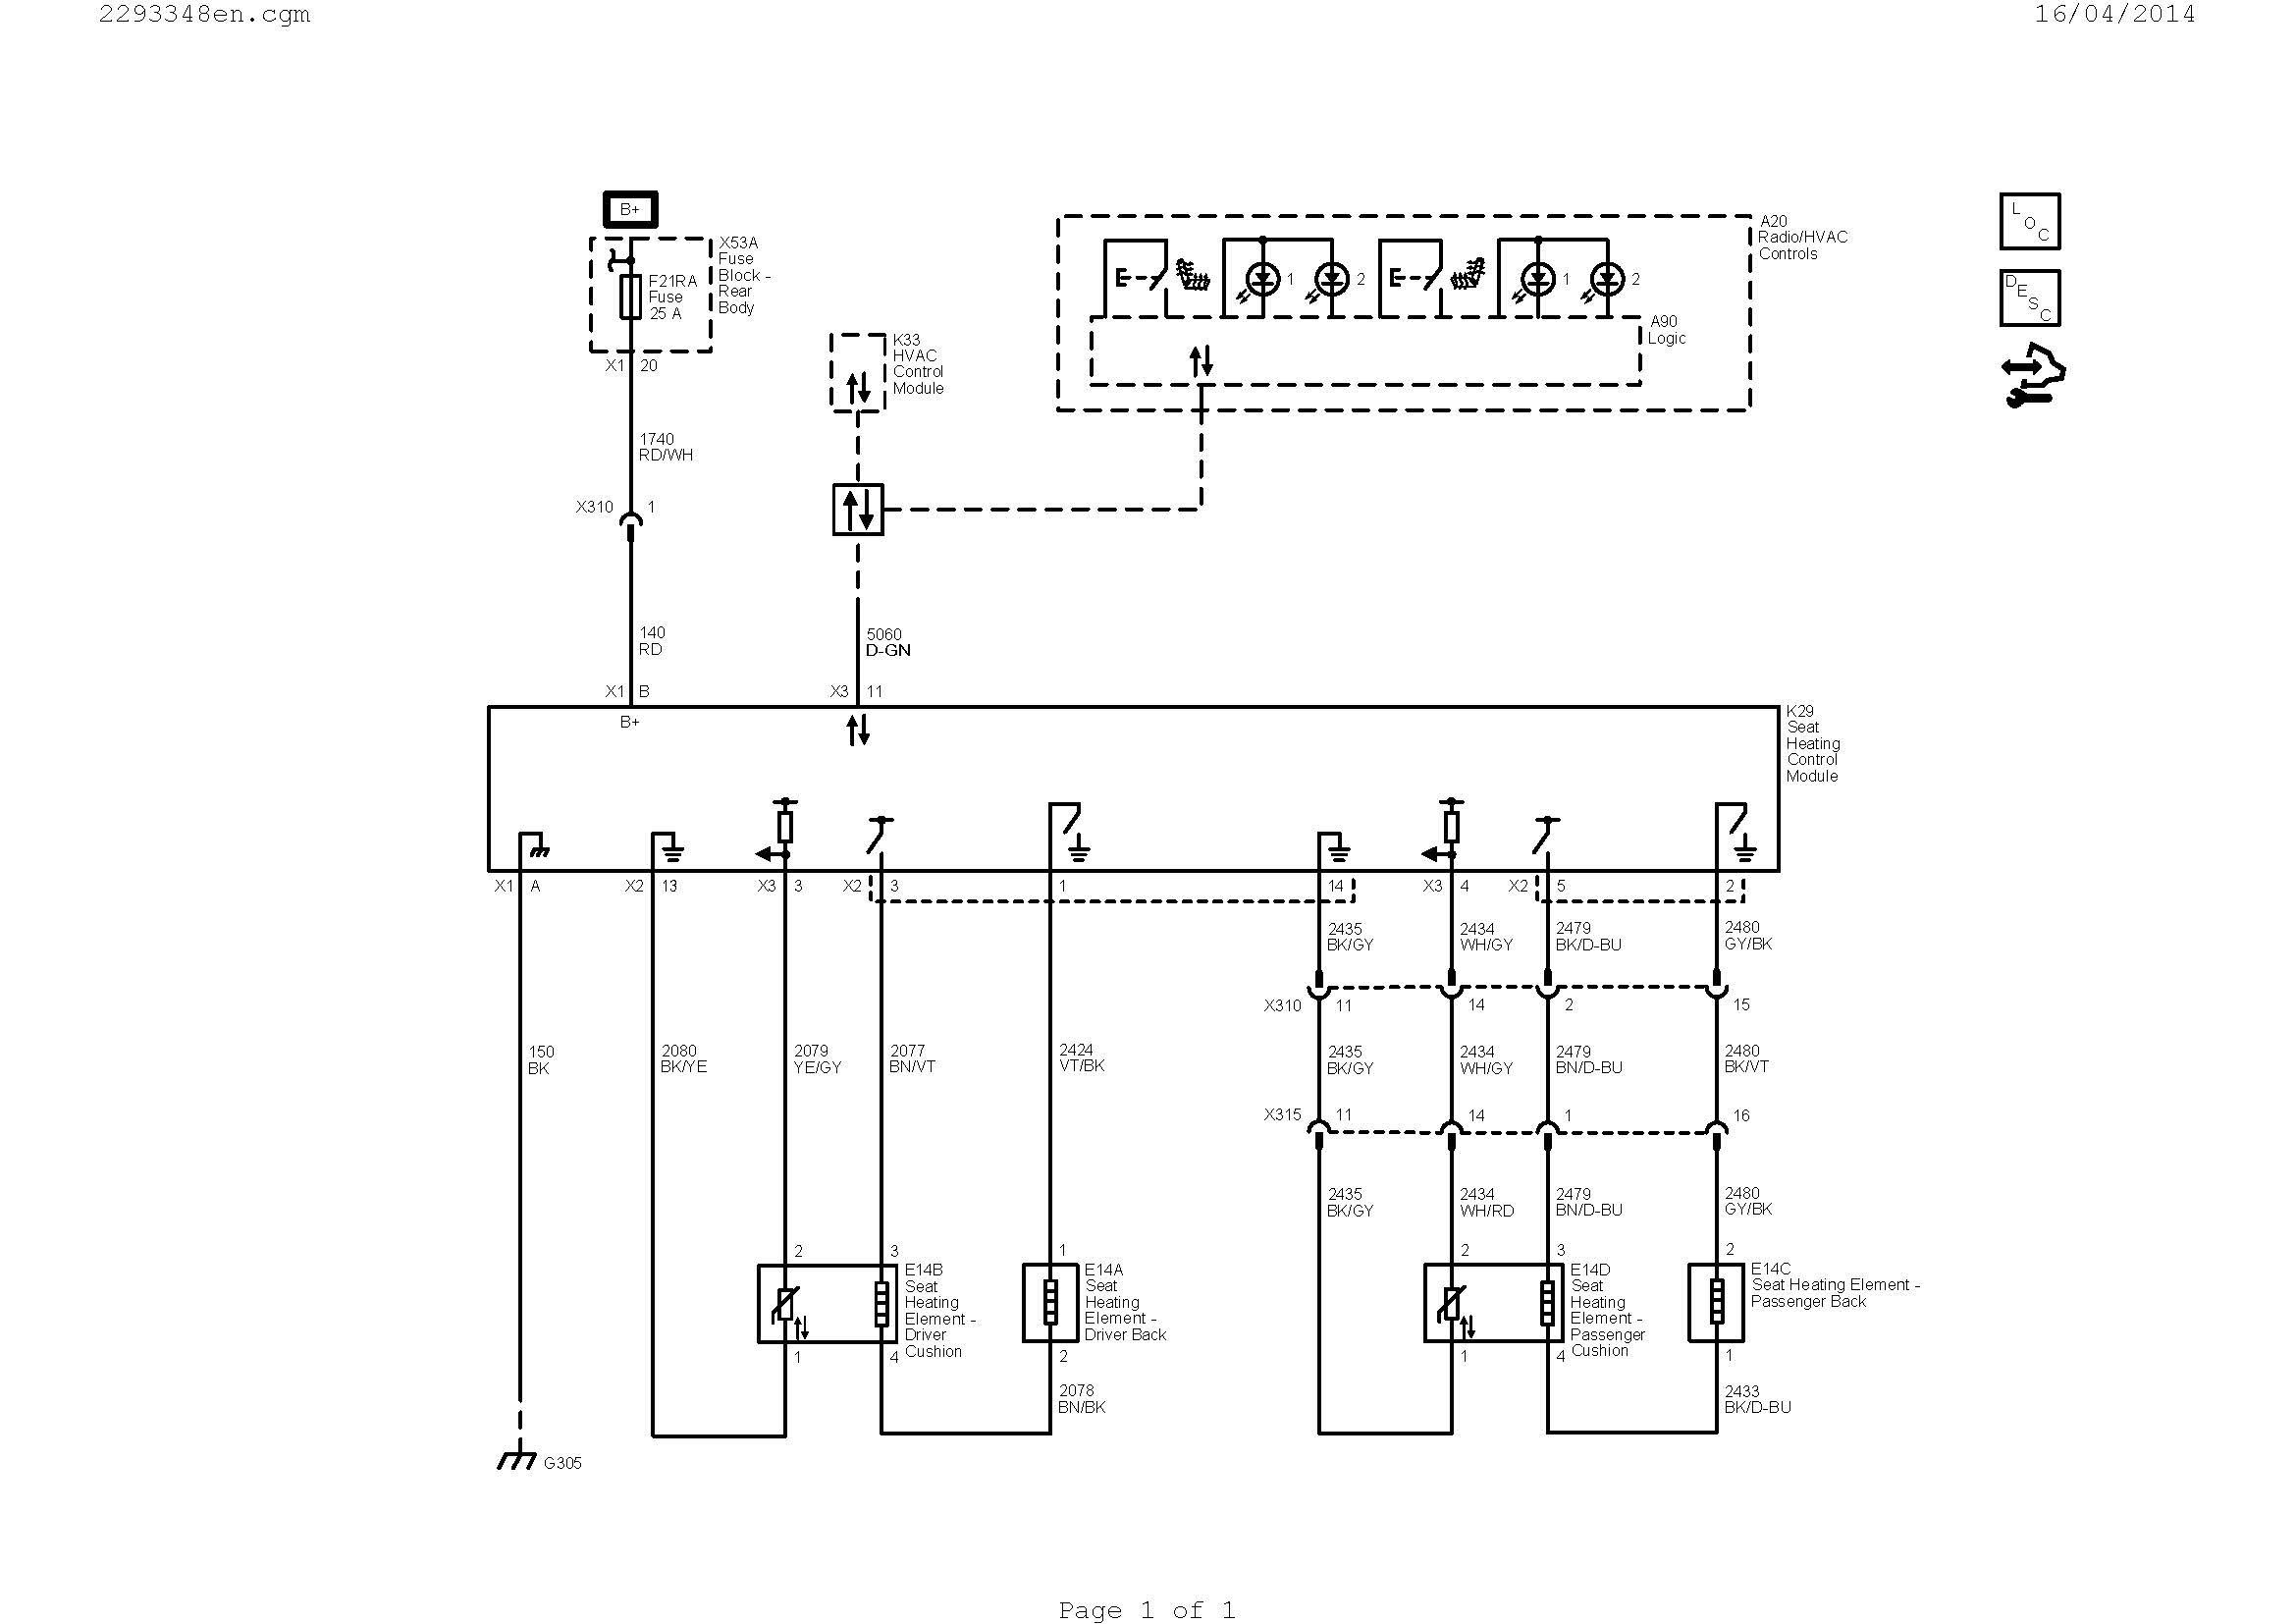 Current Transducer Wiring Diagram Gallery